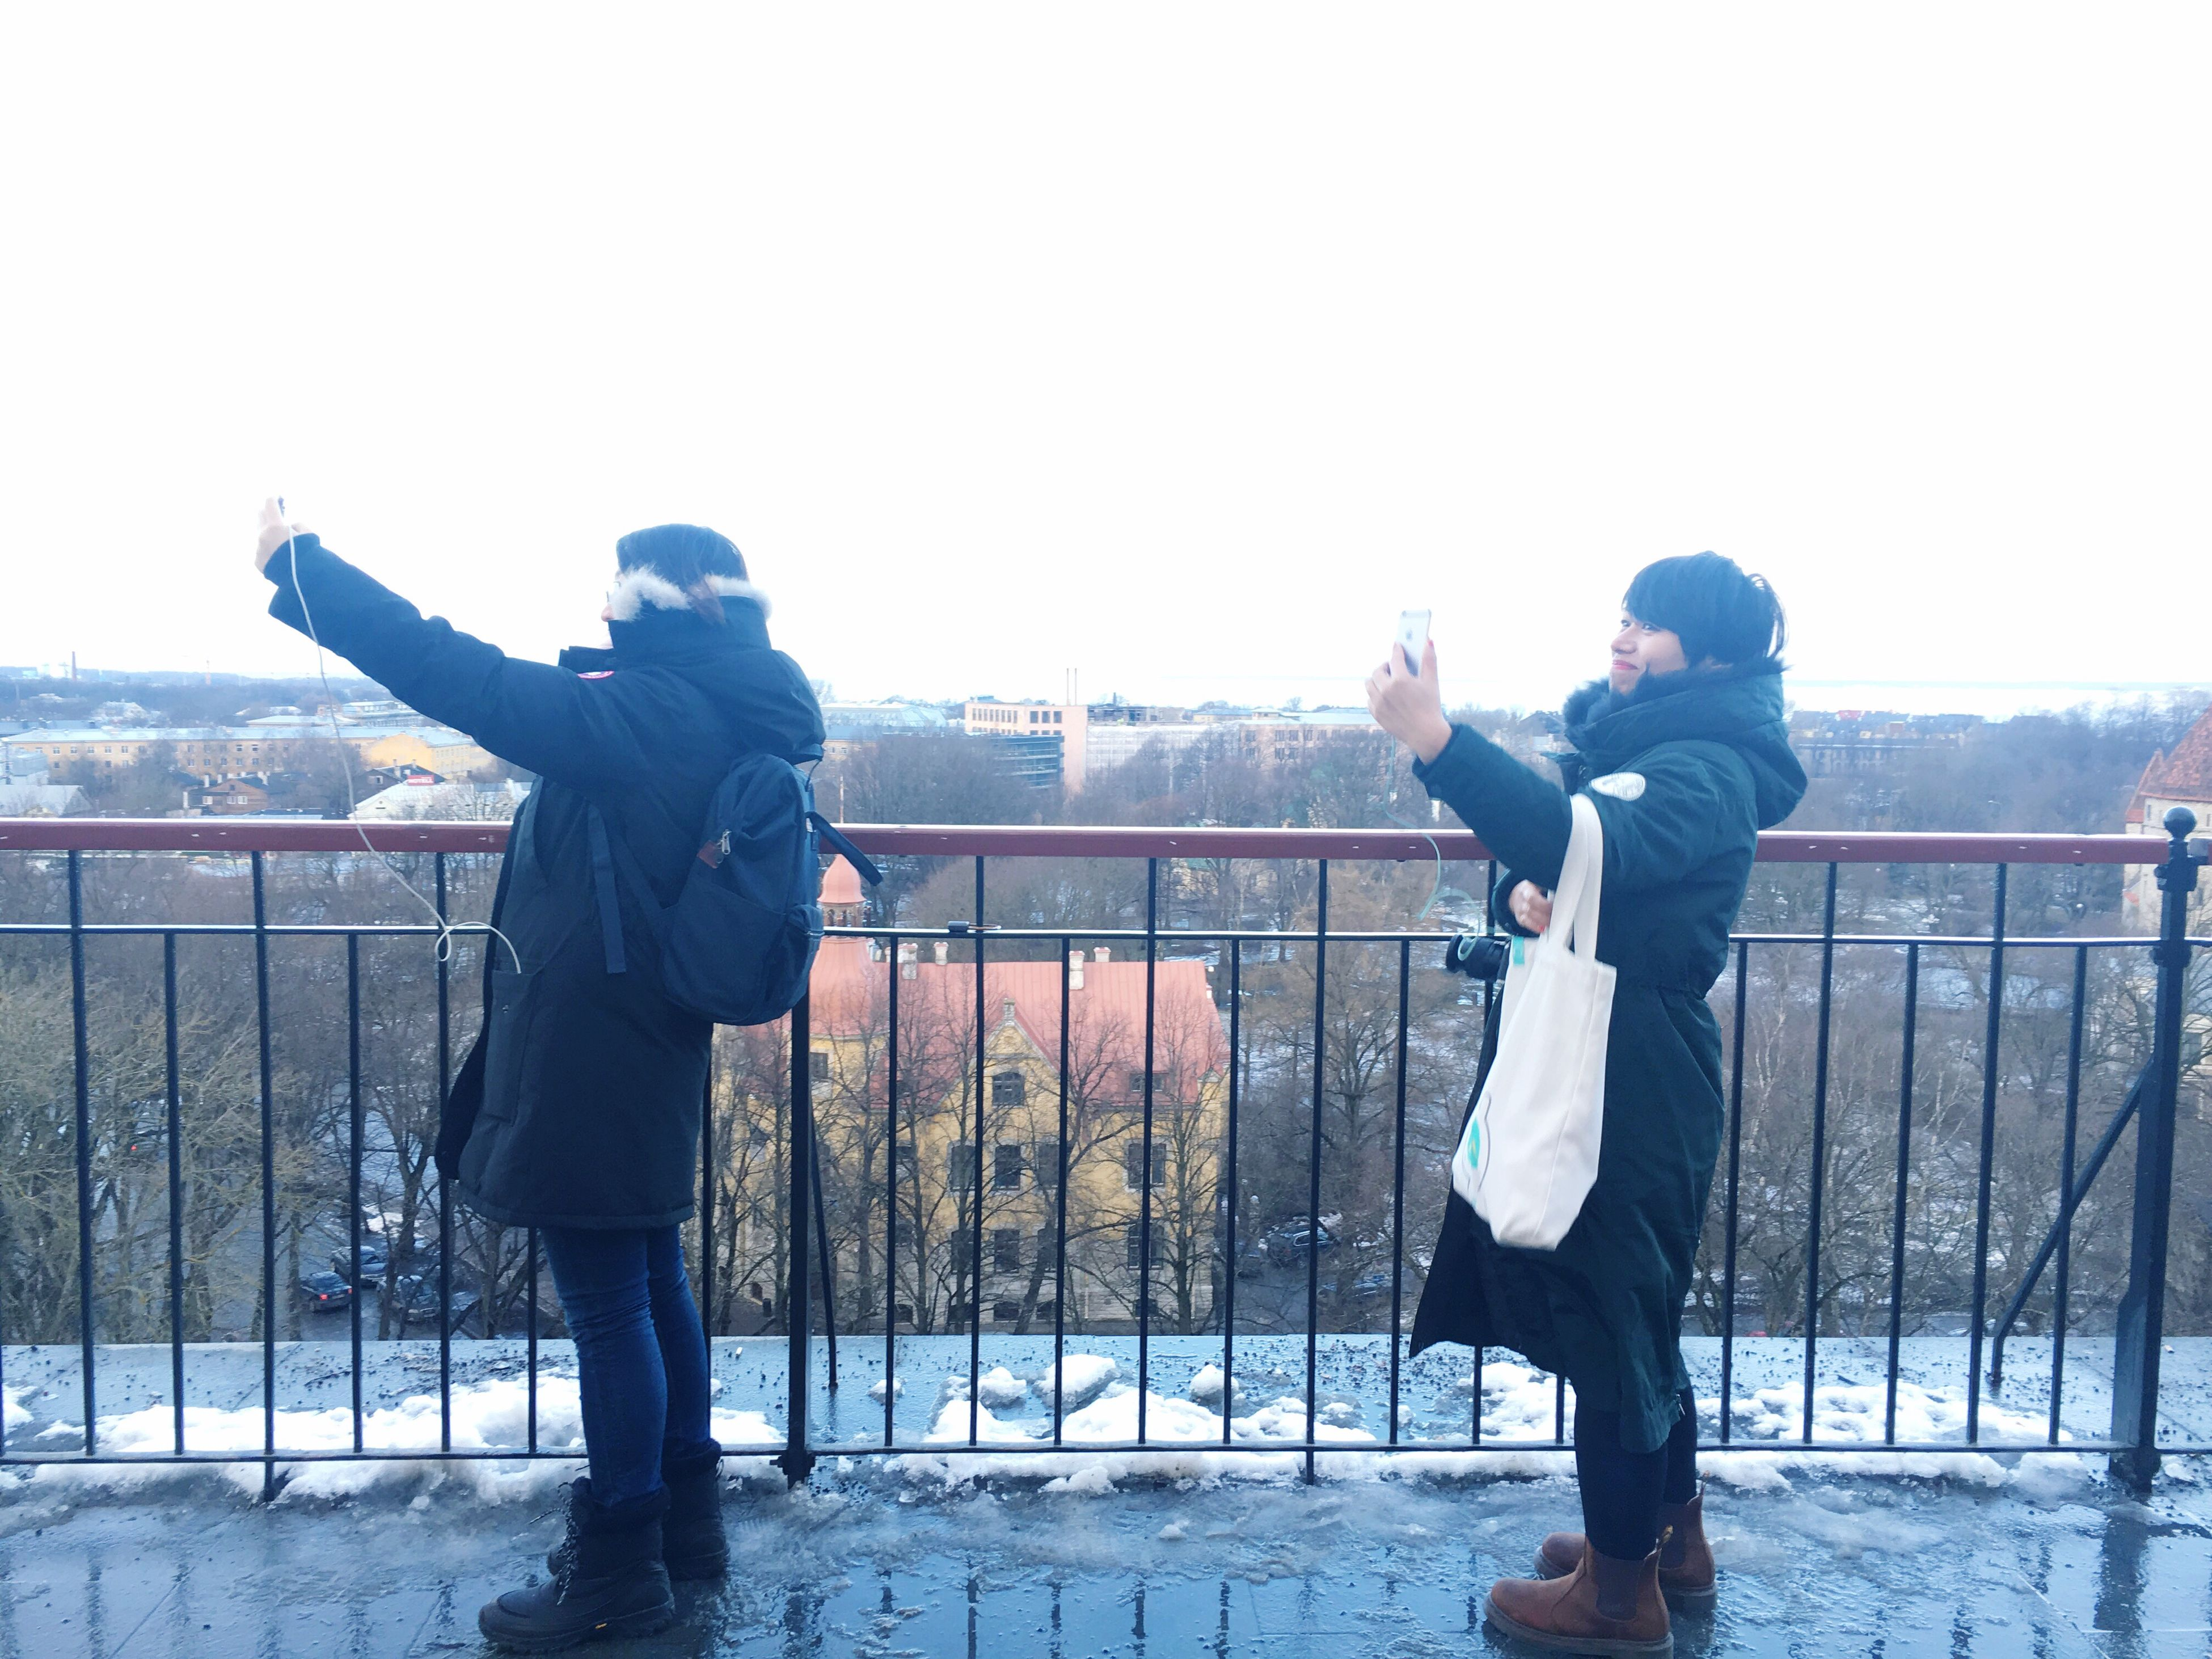 railing, winter, warm clothing, young adult, friendship, outdoors, adults only, people, cold temperature, playing, adult, full length, bridge - man made structure, togetherness, real people, only men, sport, men, snow, day, human body part, sky, sportsman, human hand